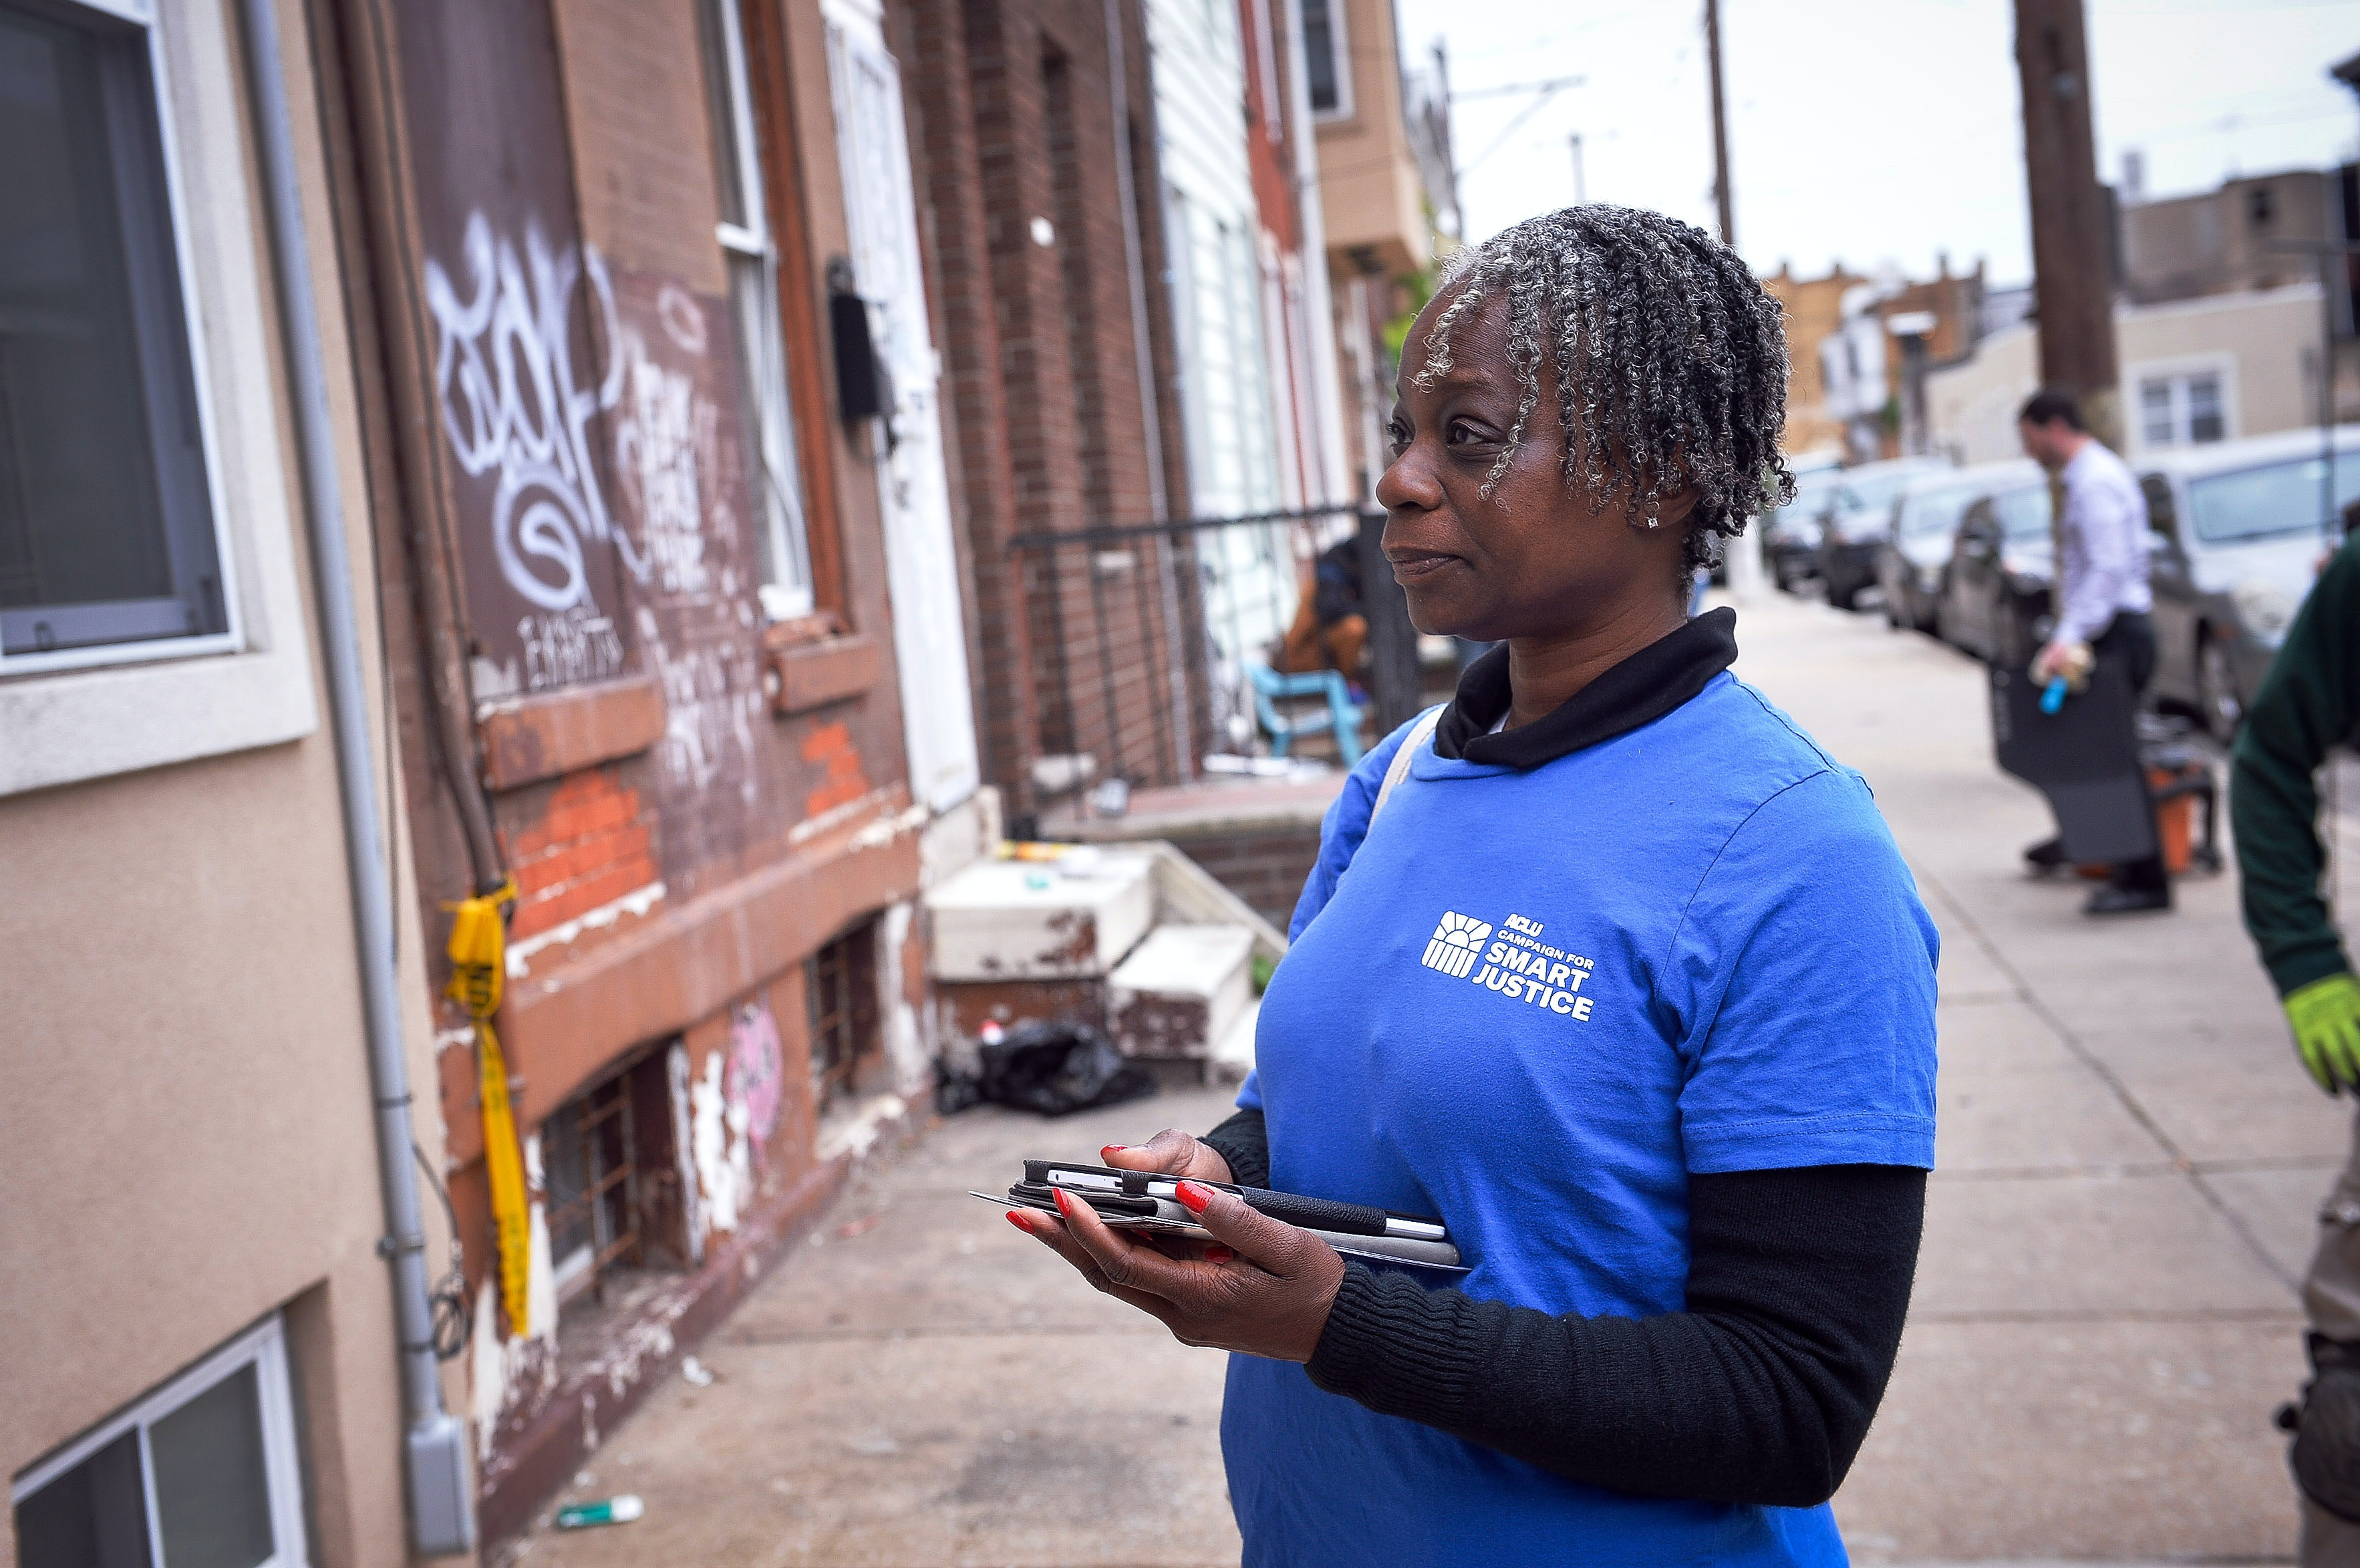 Donna Carter waits to see if a resident as home as she canvasses on behalf of the ACLU in South Philadelphia, PA,Thursday, May 11, 2017.Charles Mostoller for the Intercept